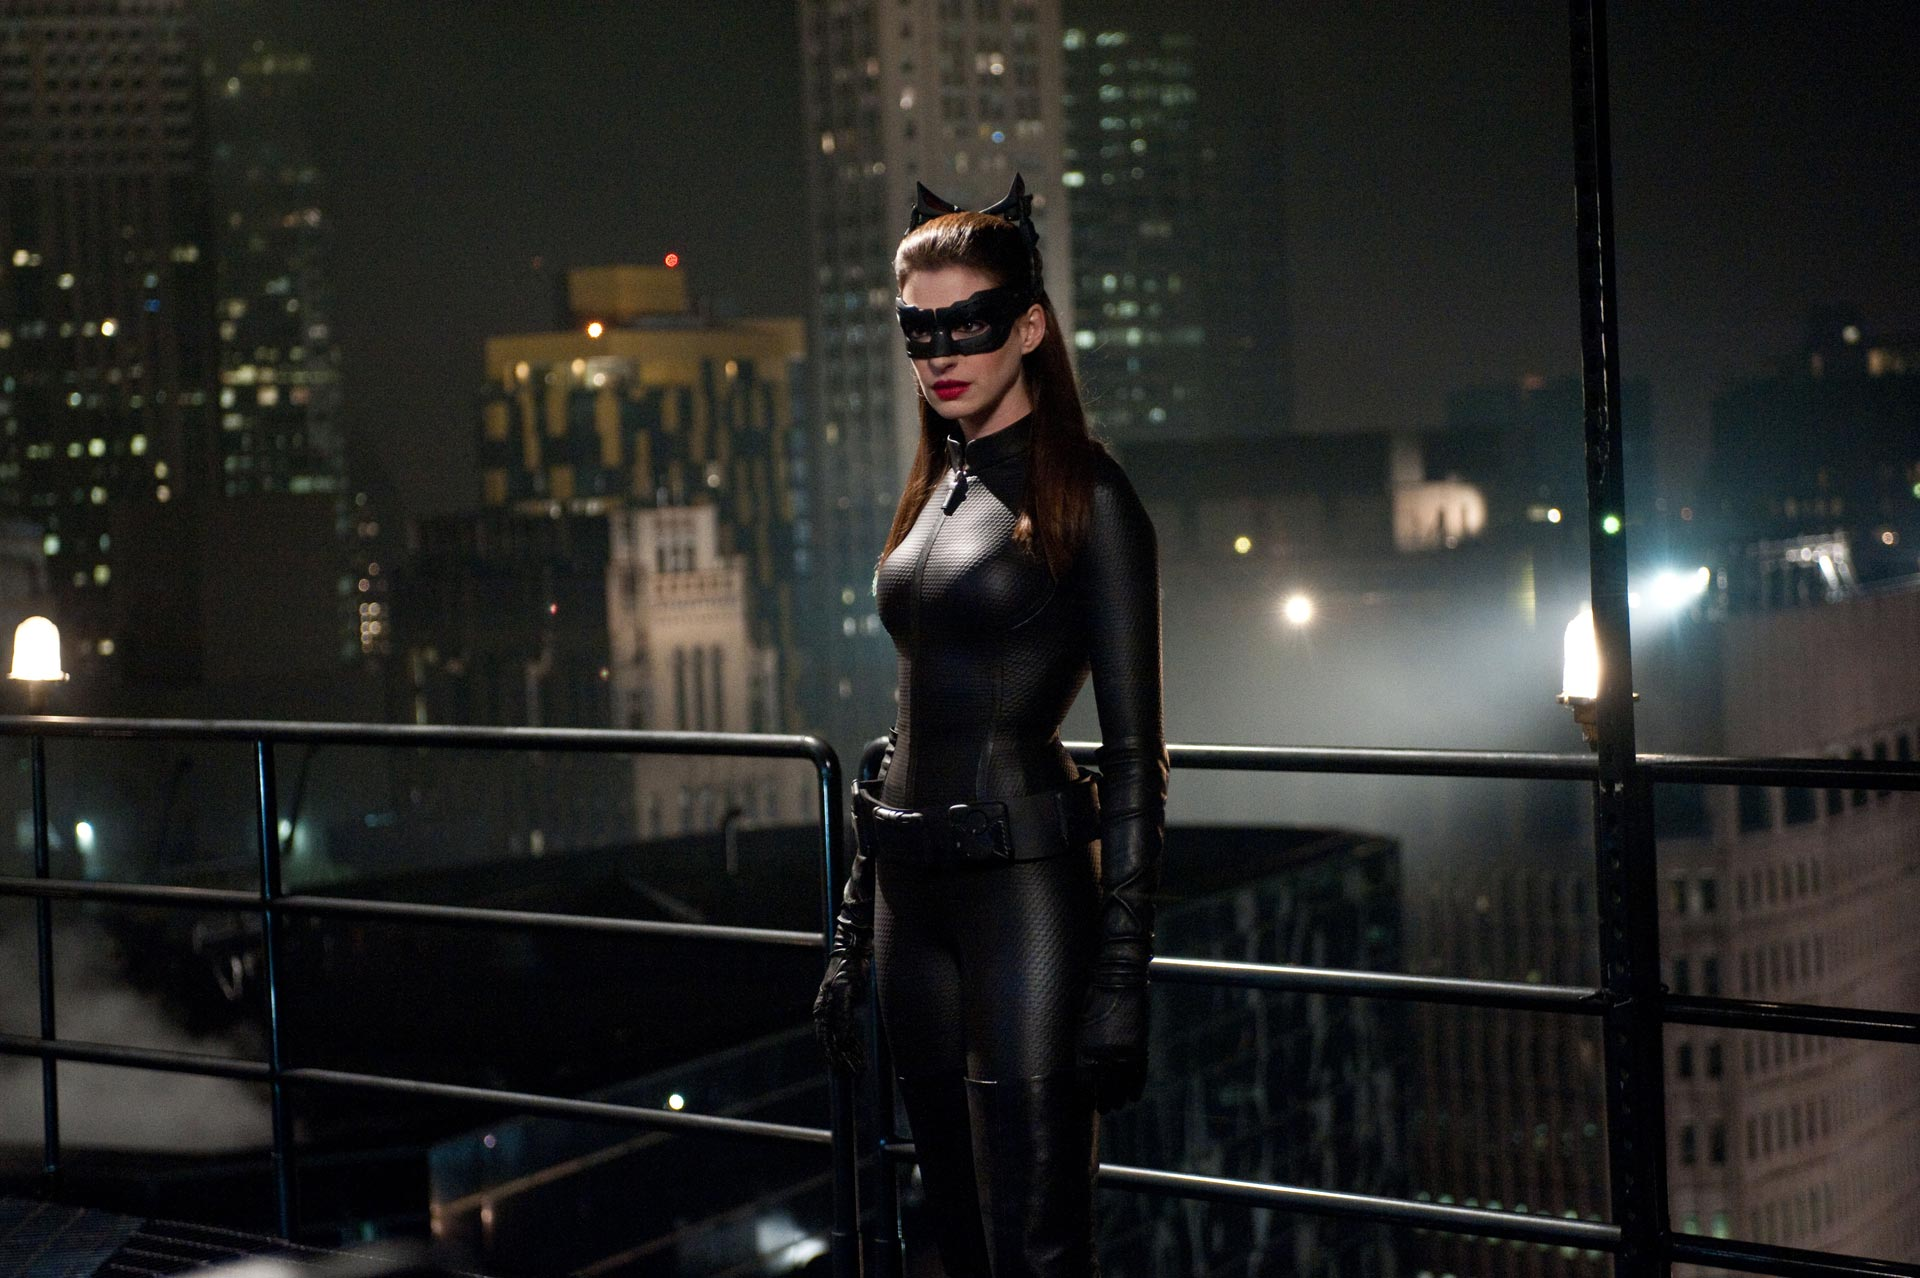 Anne Hathaway - Catwoman Wallpaper - 5